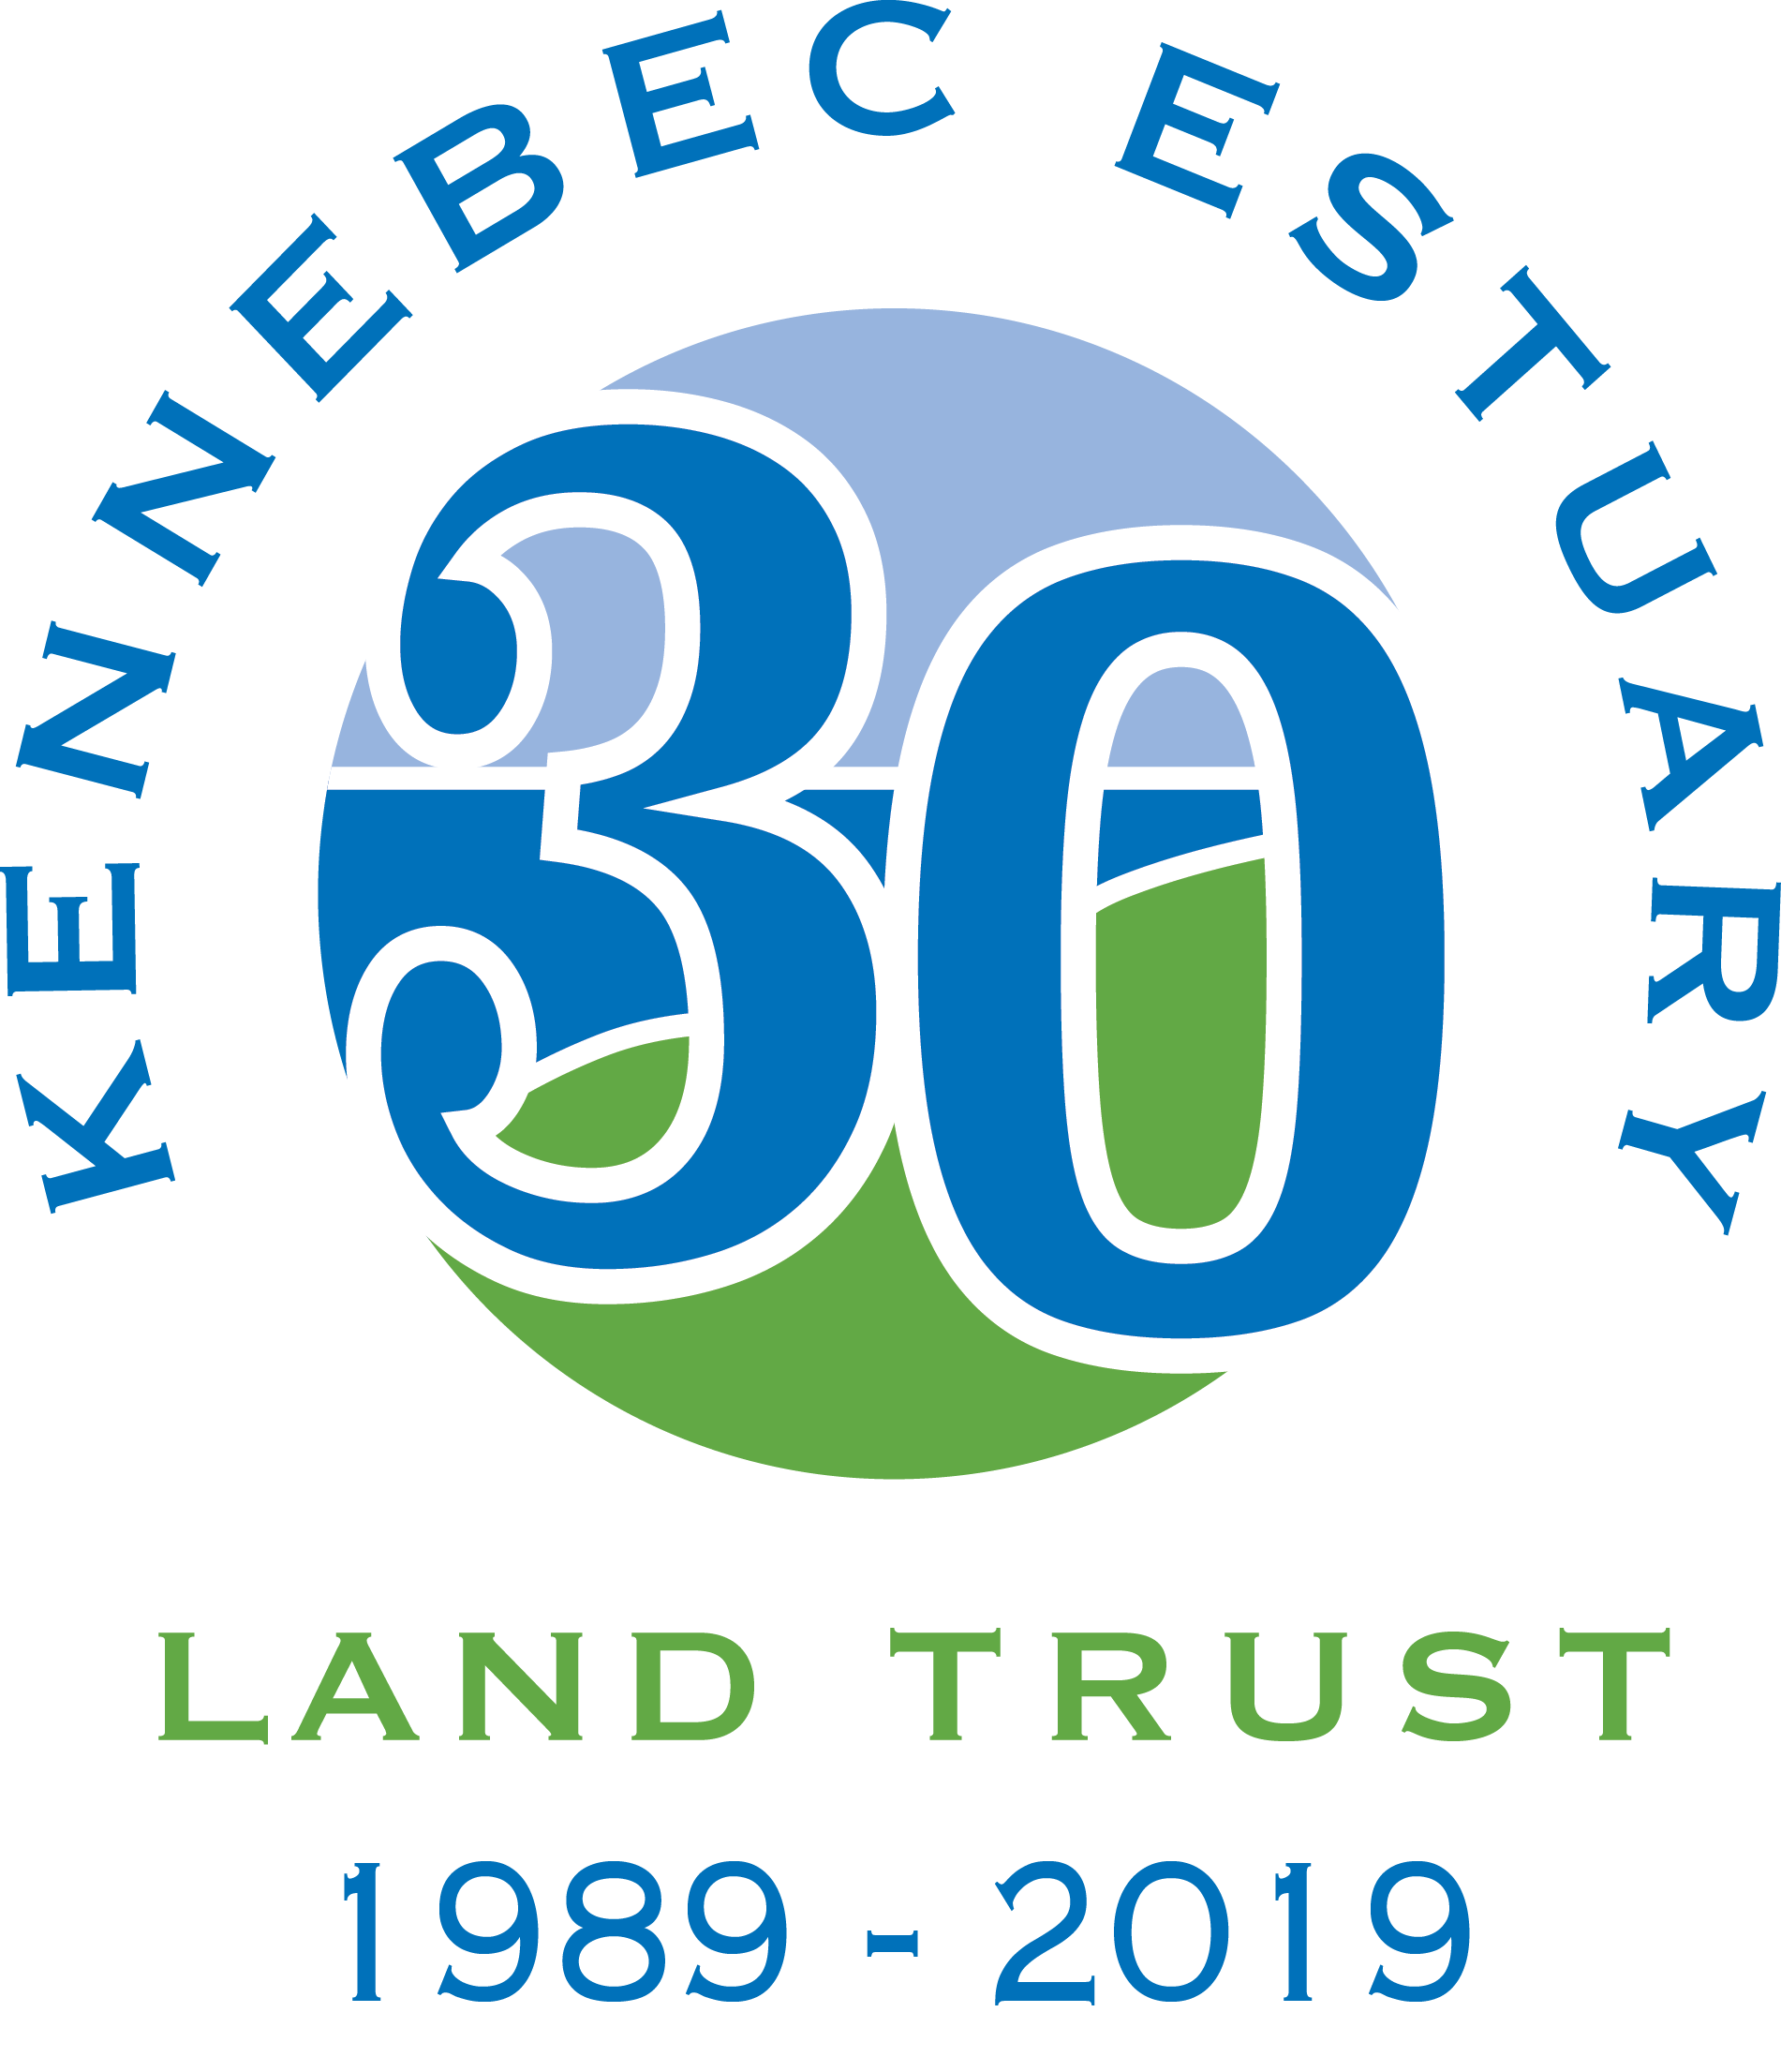 KELT Circle 30 anniversary (like original logo with dates).png